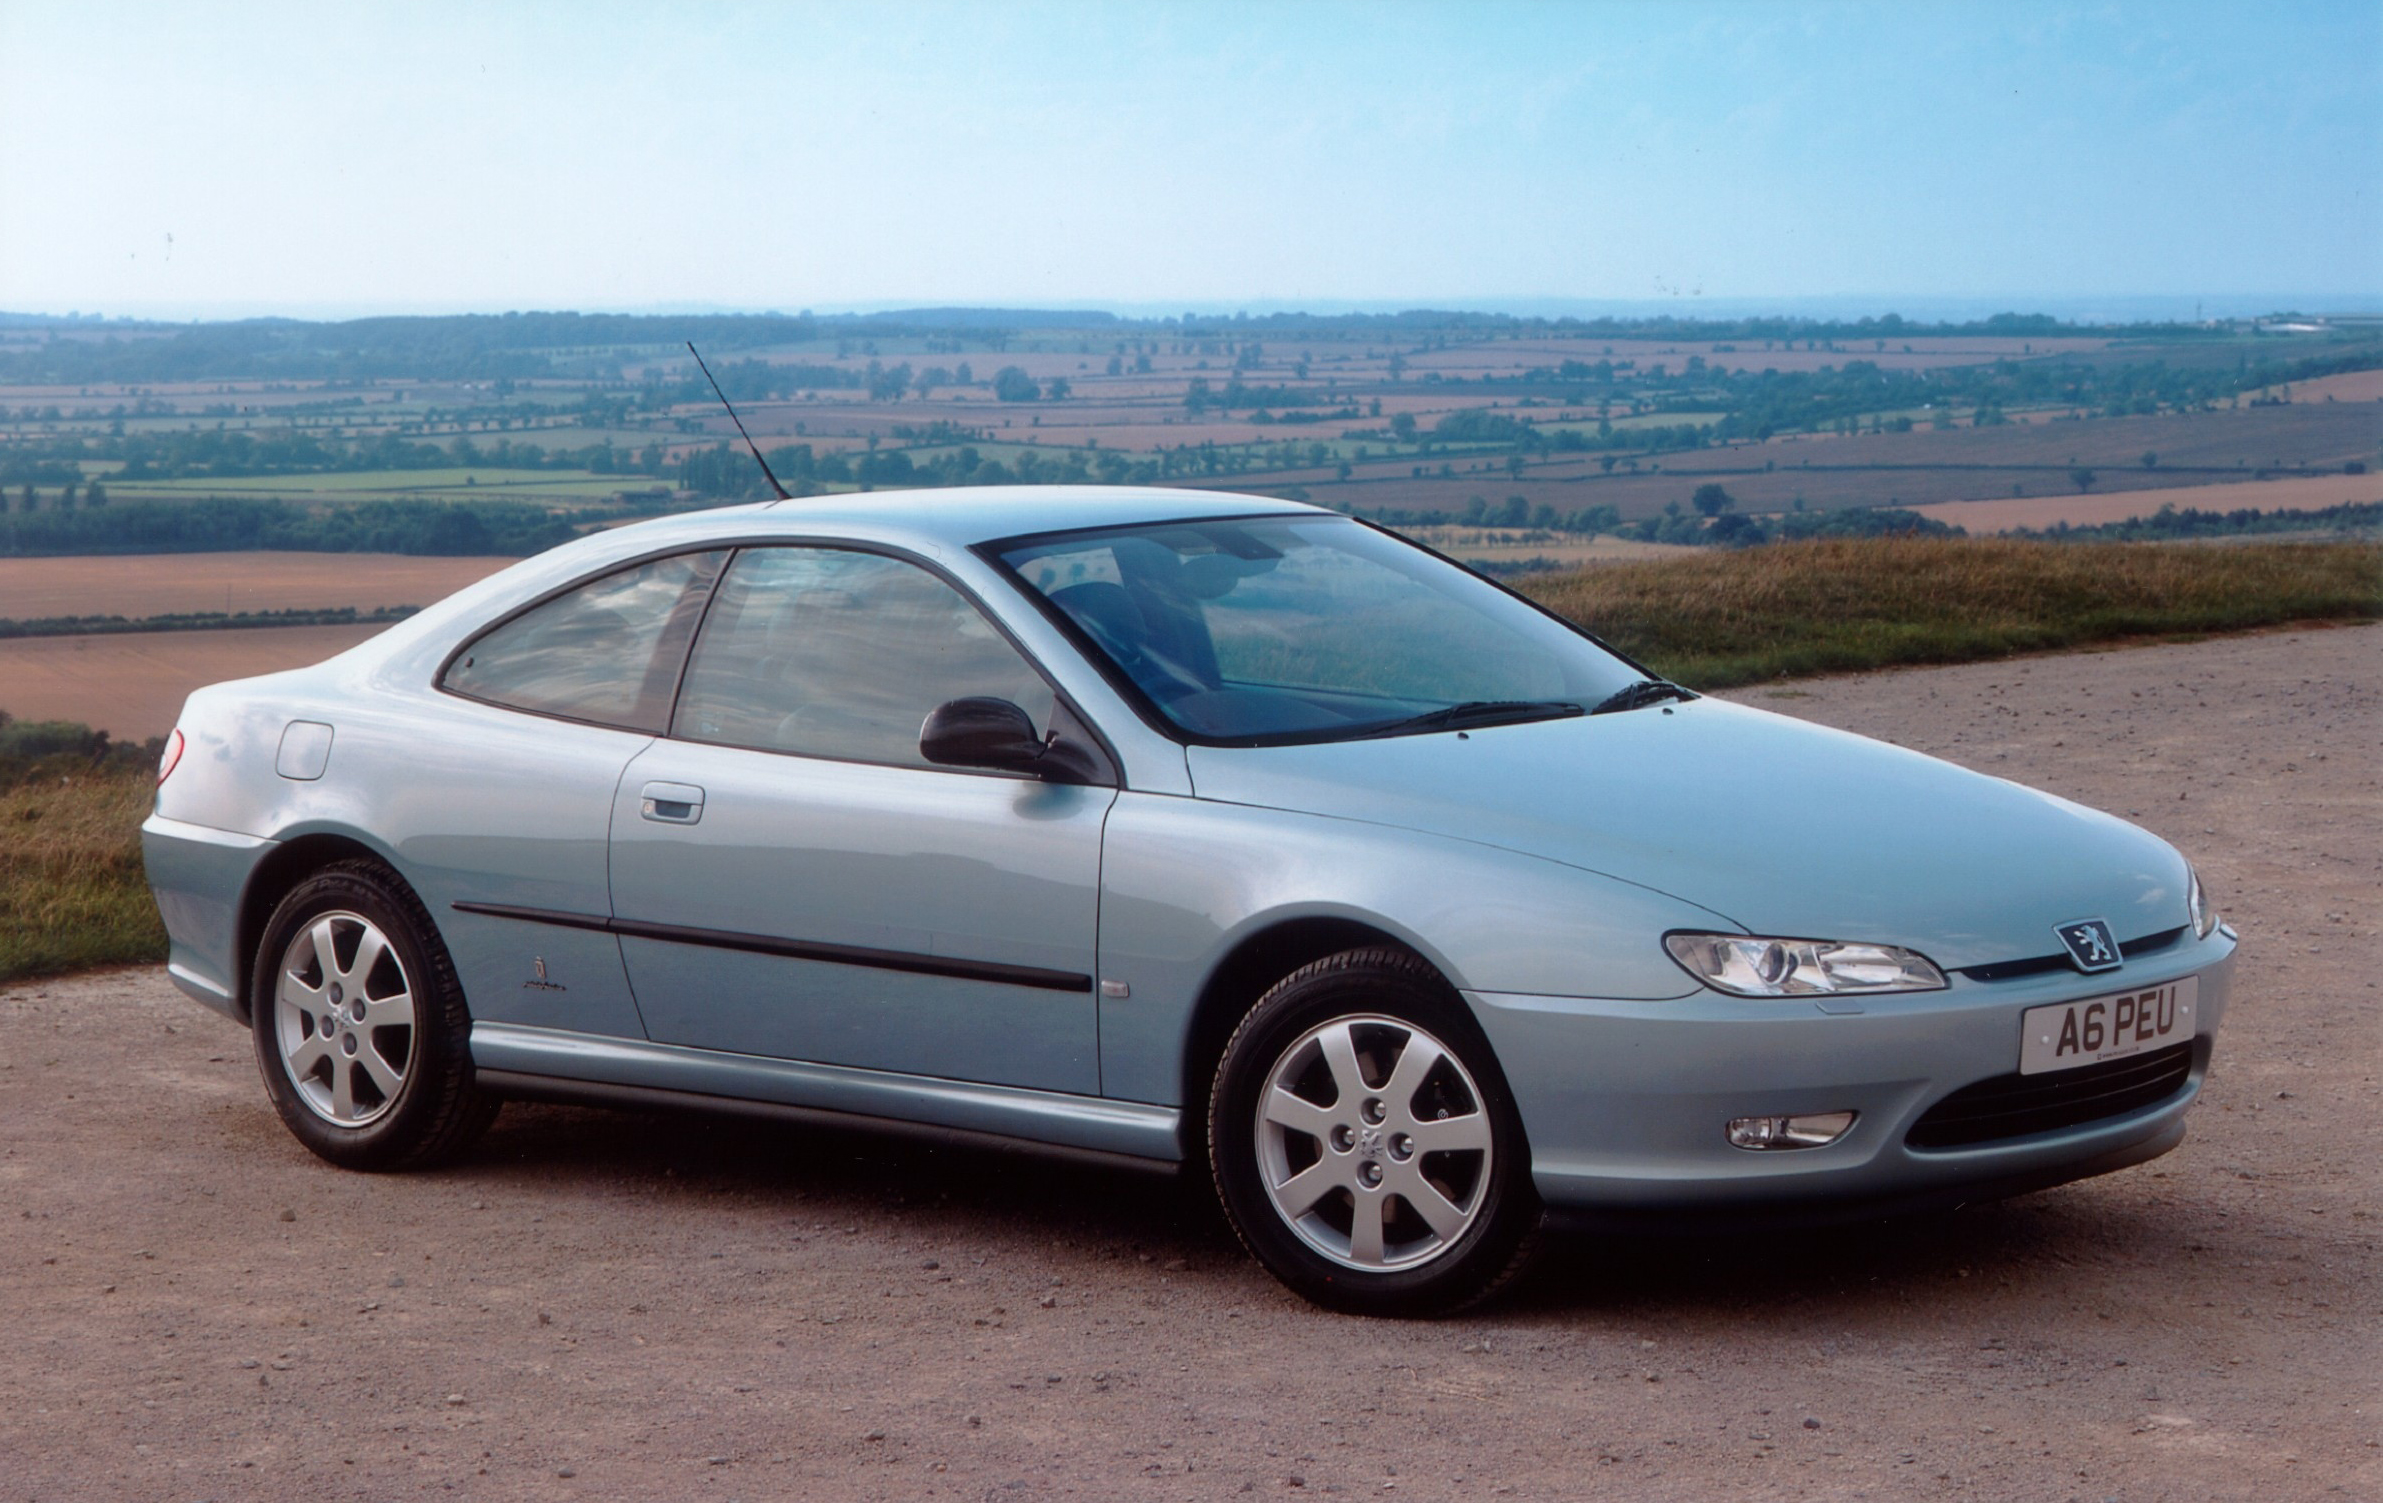 Pininfarina turned the Peugeot 406 into a truly stunning coupe